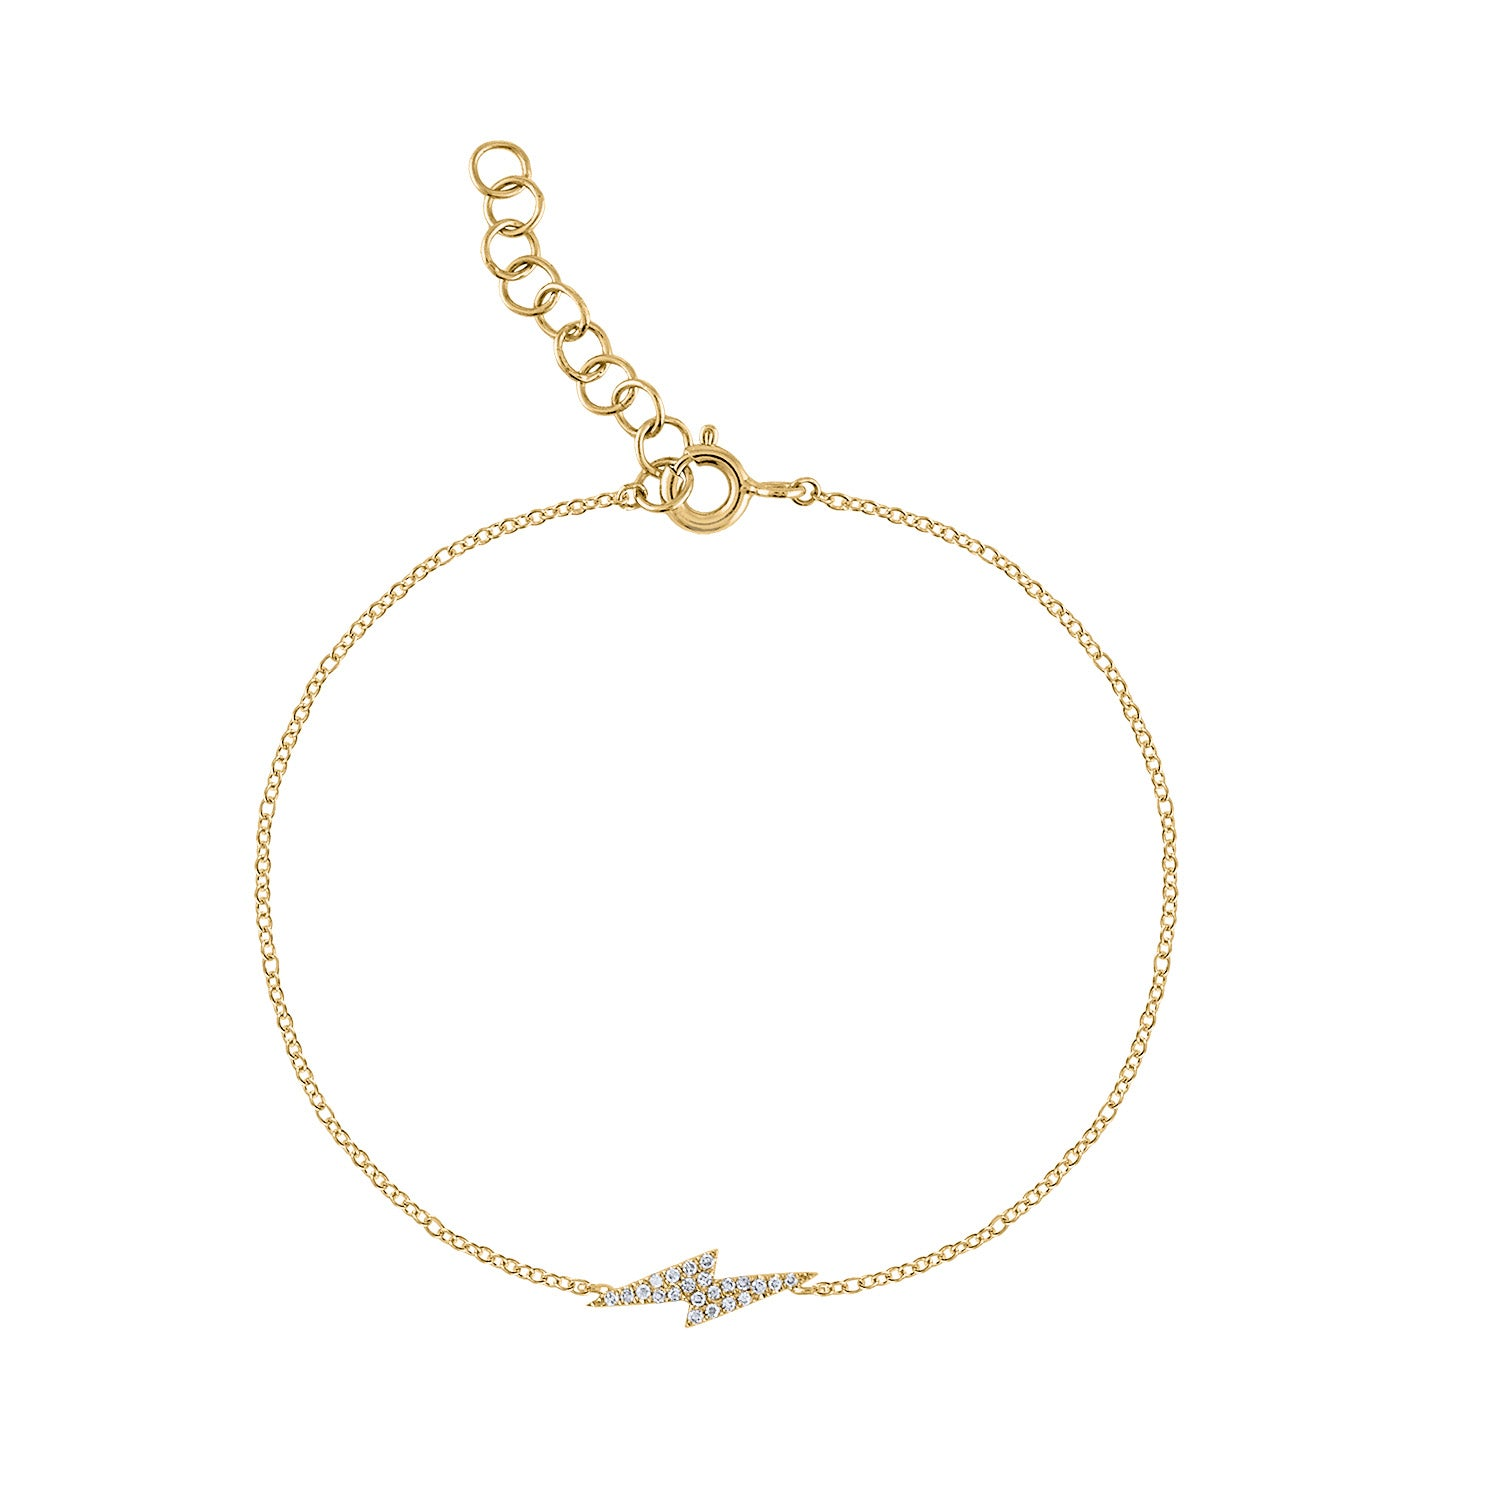 14KT GOLD DIAMOND LIGHTENING BOLT BRACELET